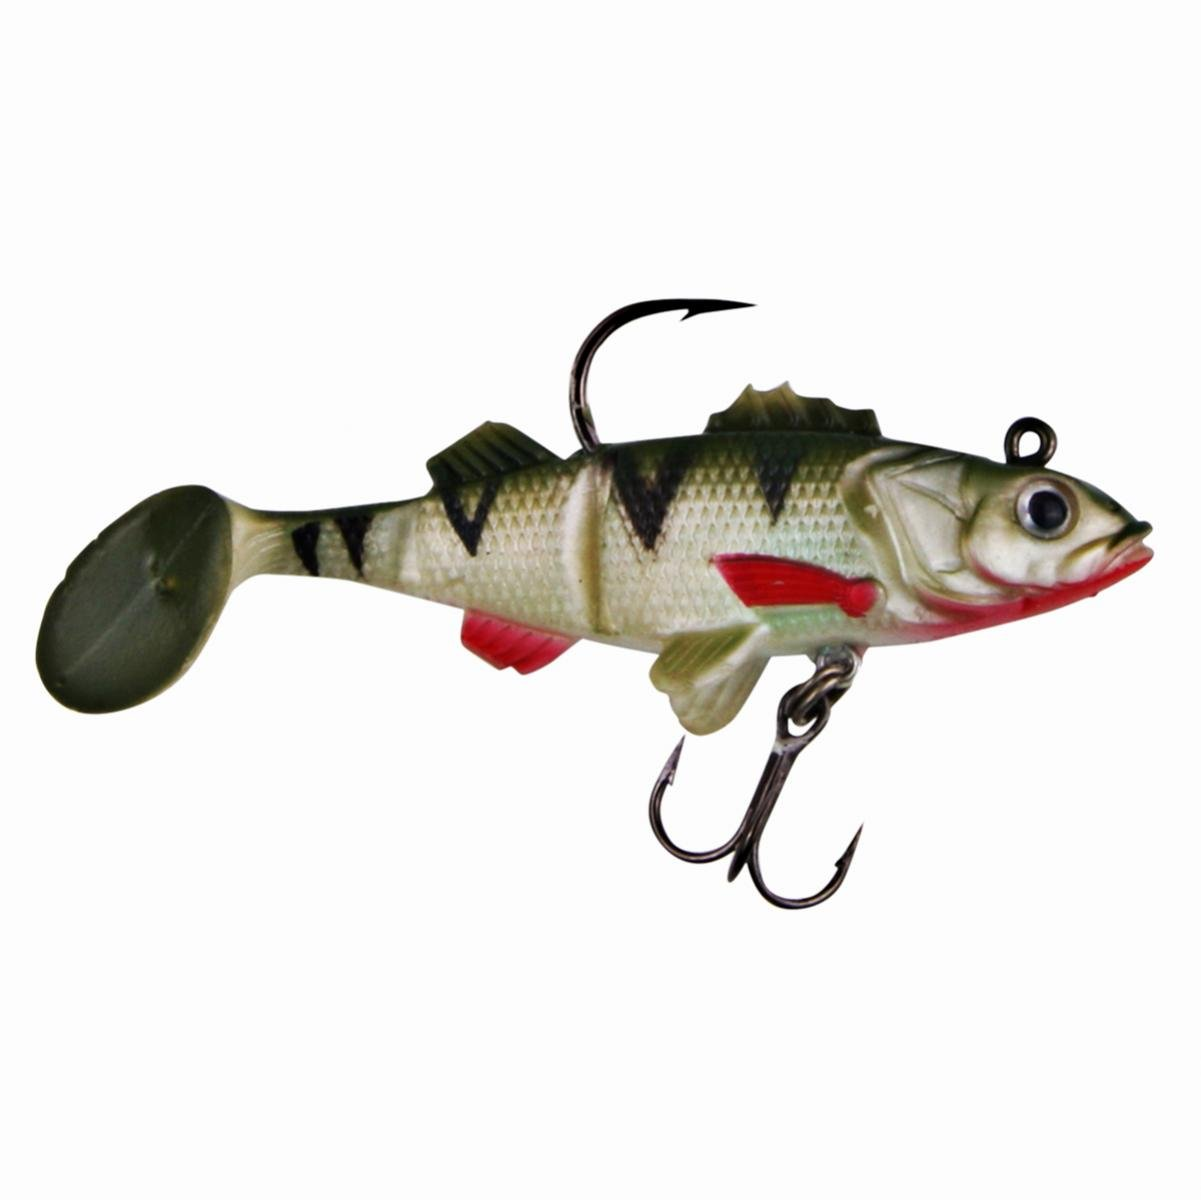 D.A.M. FZ Baby Perch Gumihal